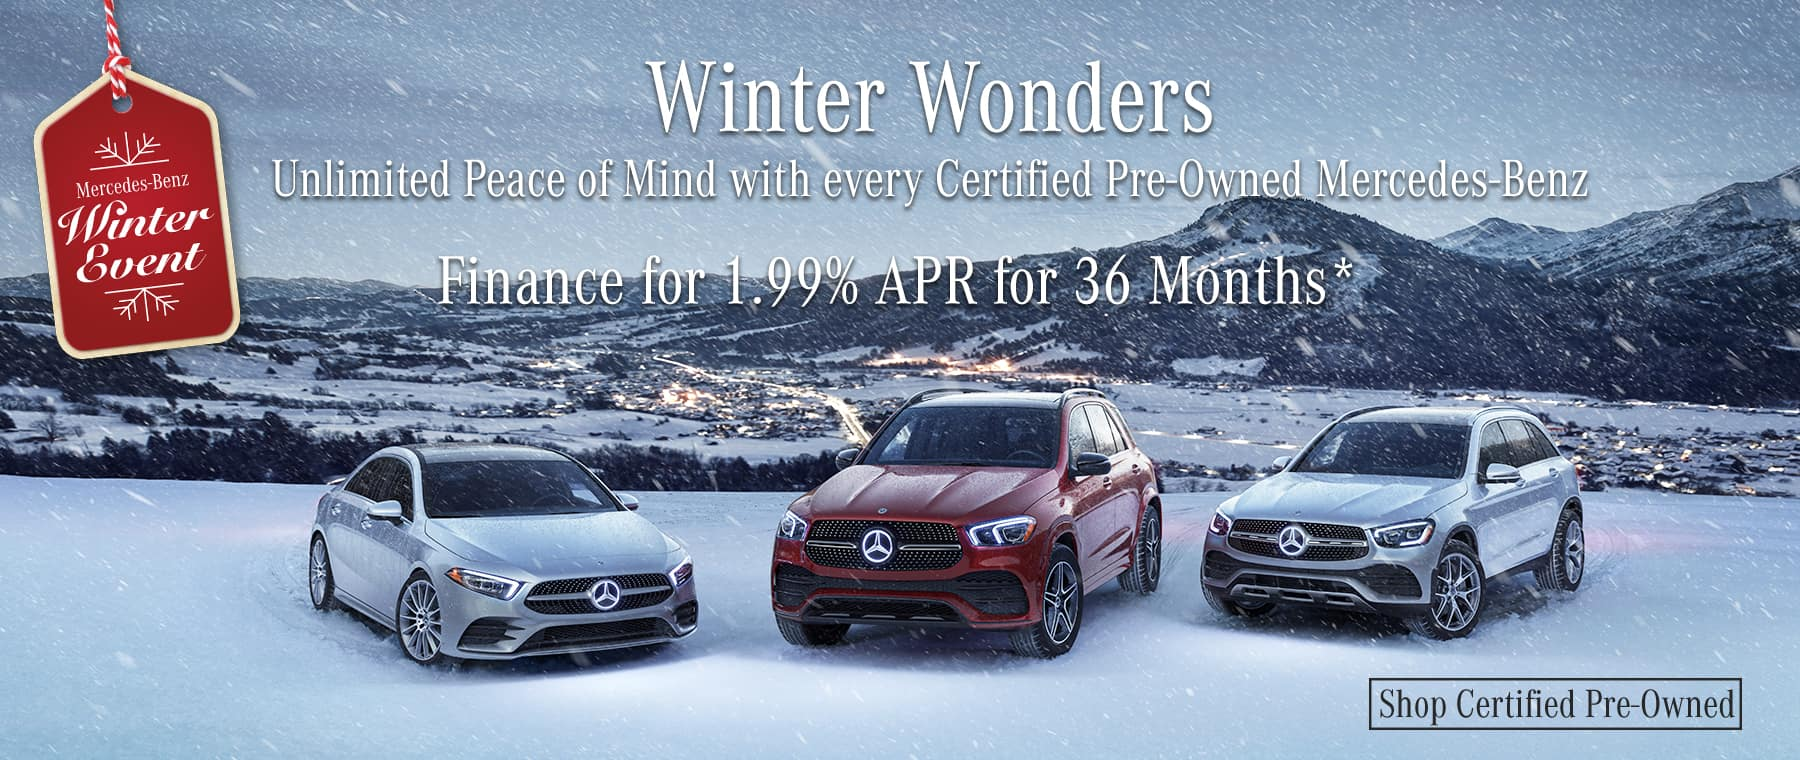 Winter Wonders! Finance Certified Pre-Owned for 1.99% APR for 36 Months